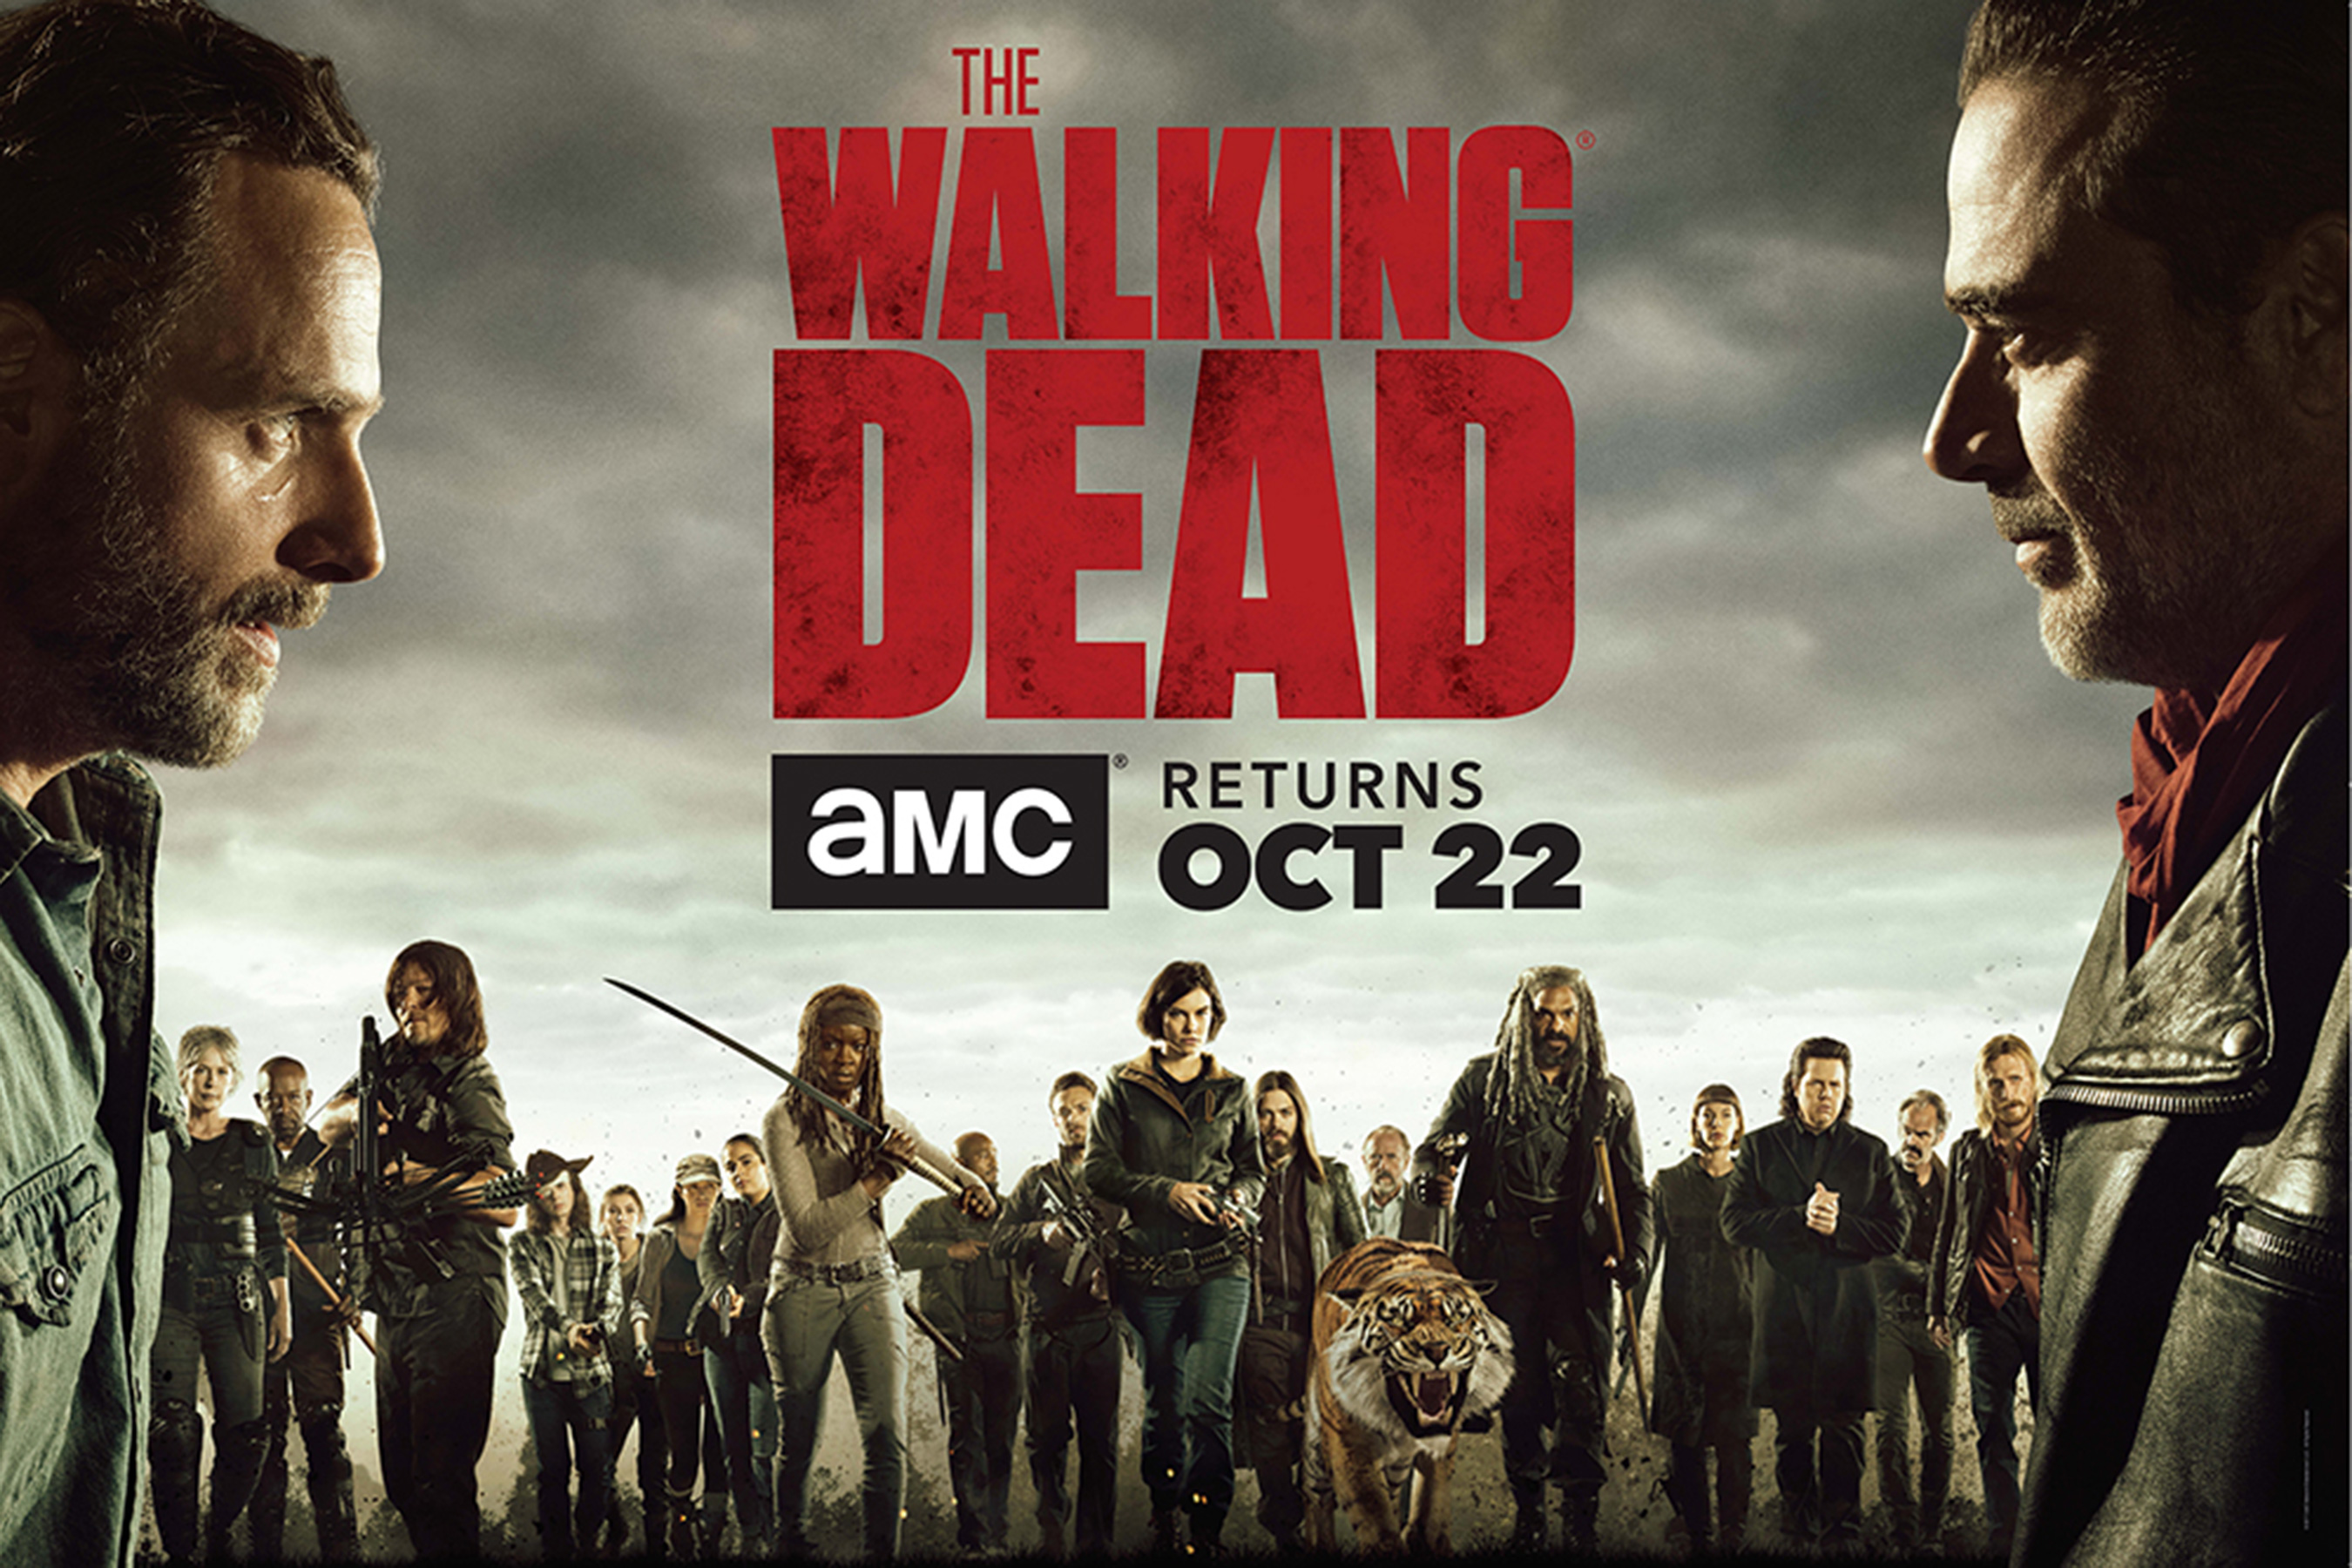 The Walking Dead Season 8 Poster